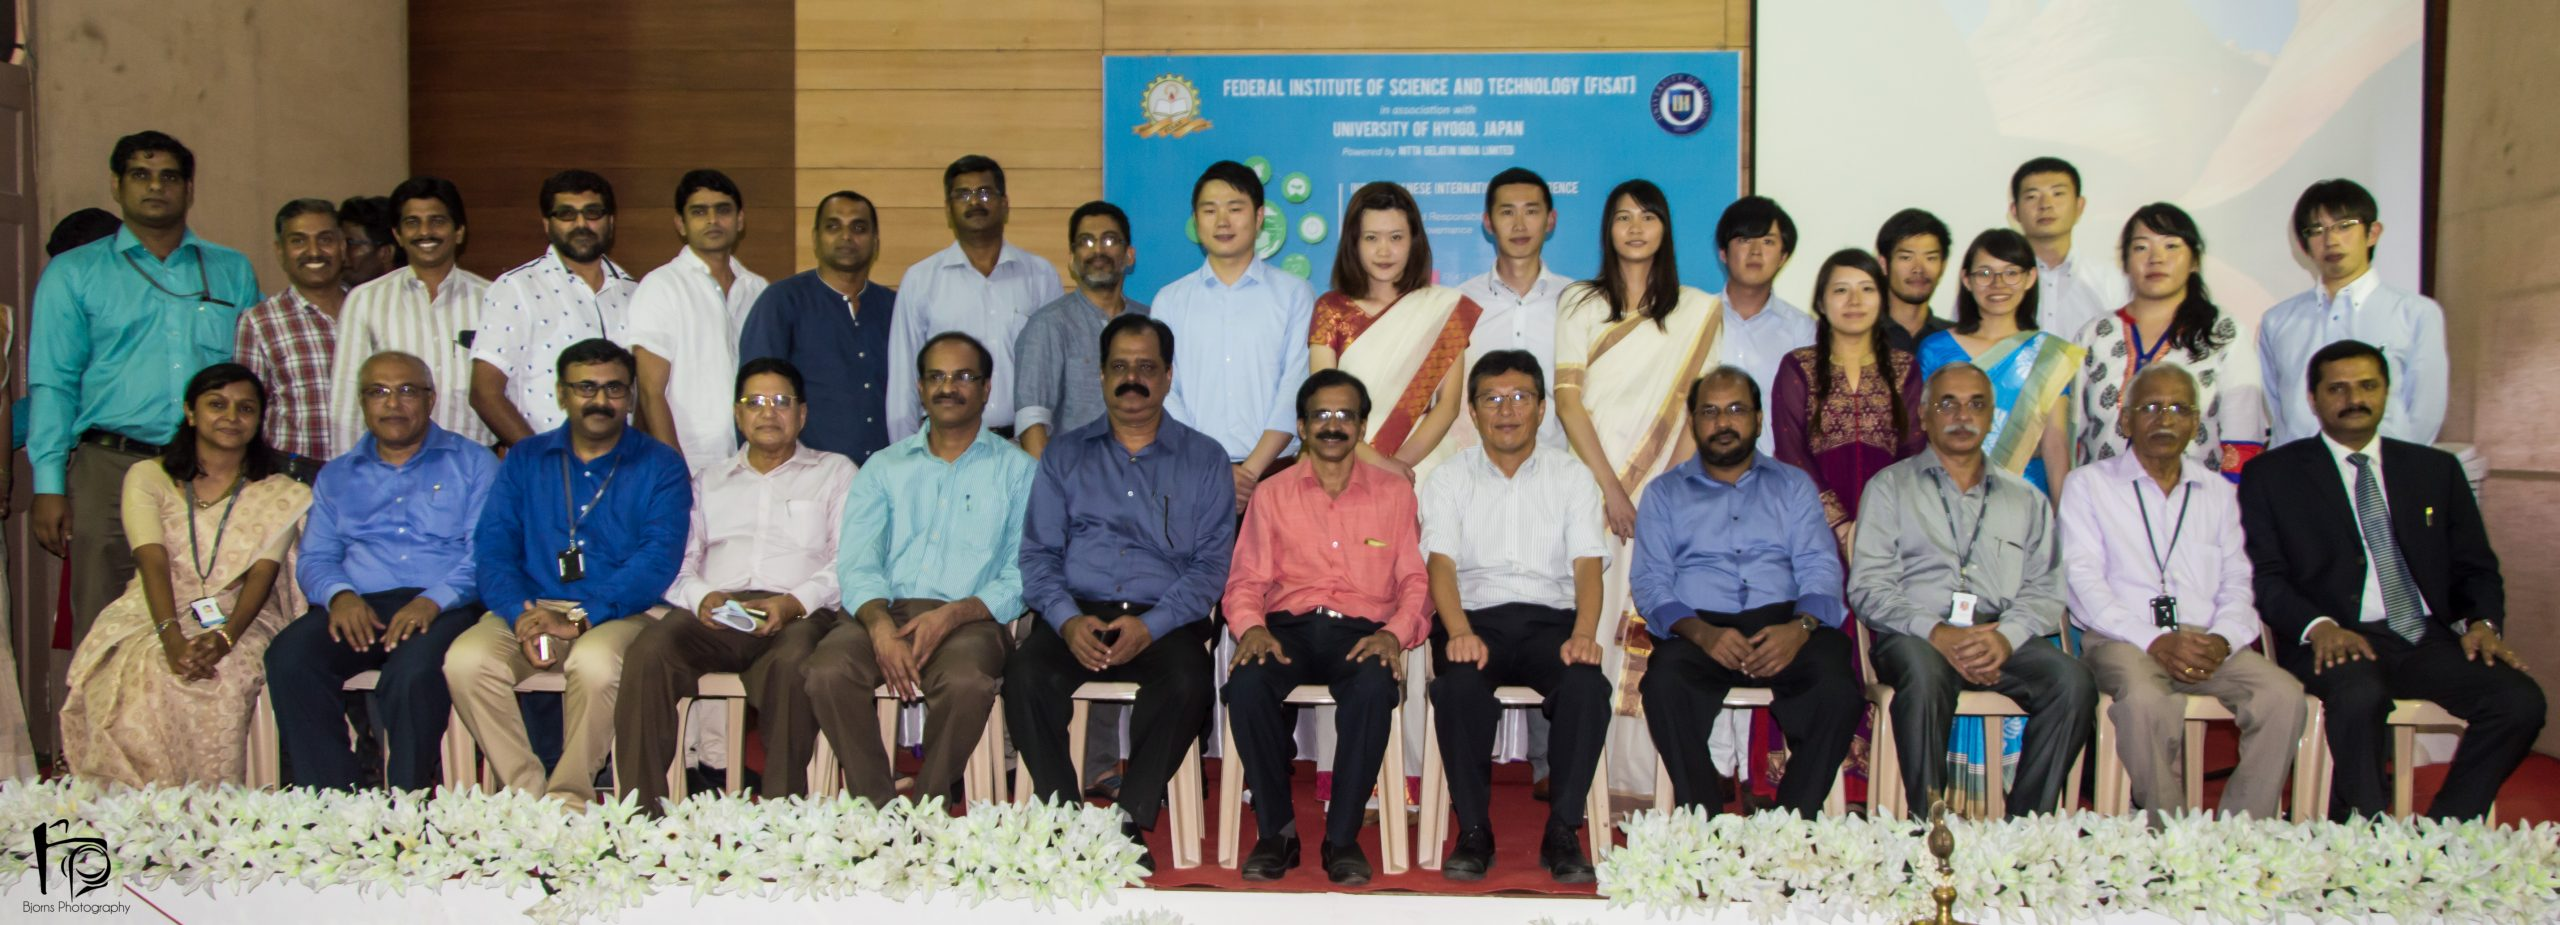 INDO-JAPANESE INTERNATIONAL CONFERENCE ON CORPORATE SOCIAL RESPONSIBILITY AND ORGANISATIONAL GOVERNANCE